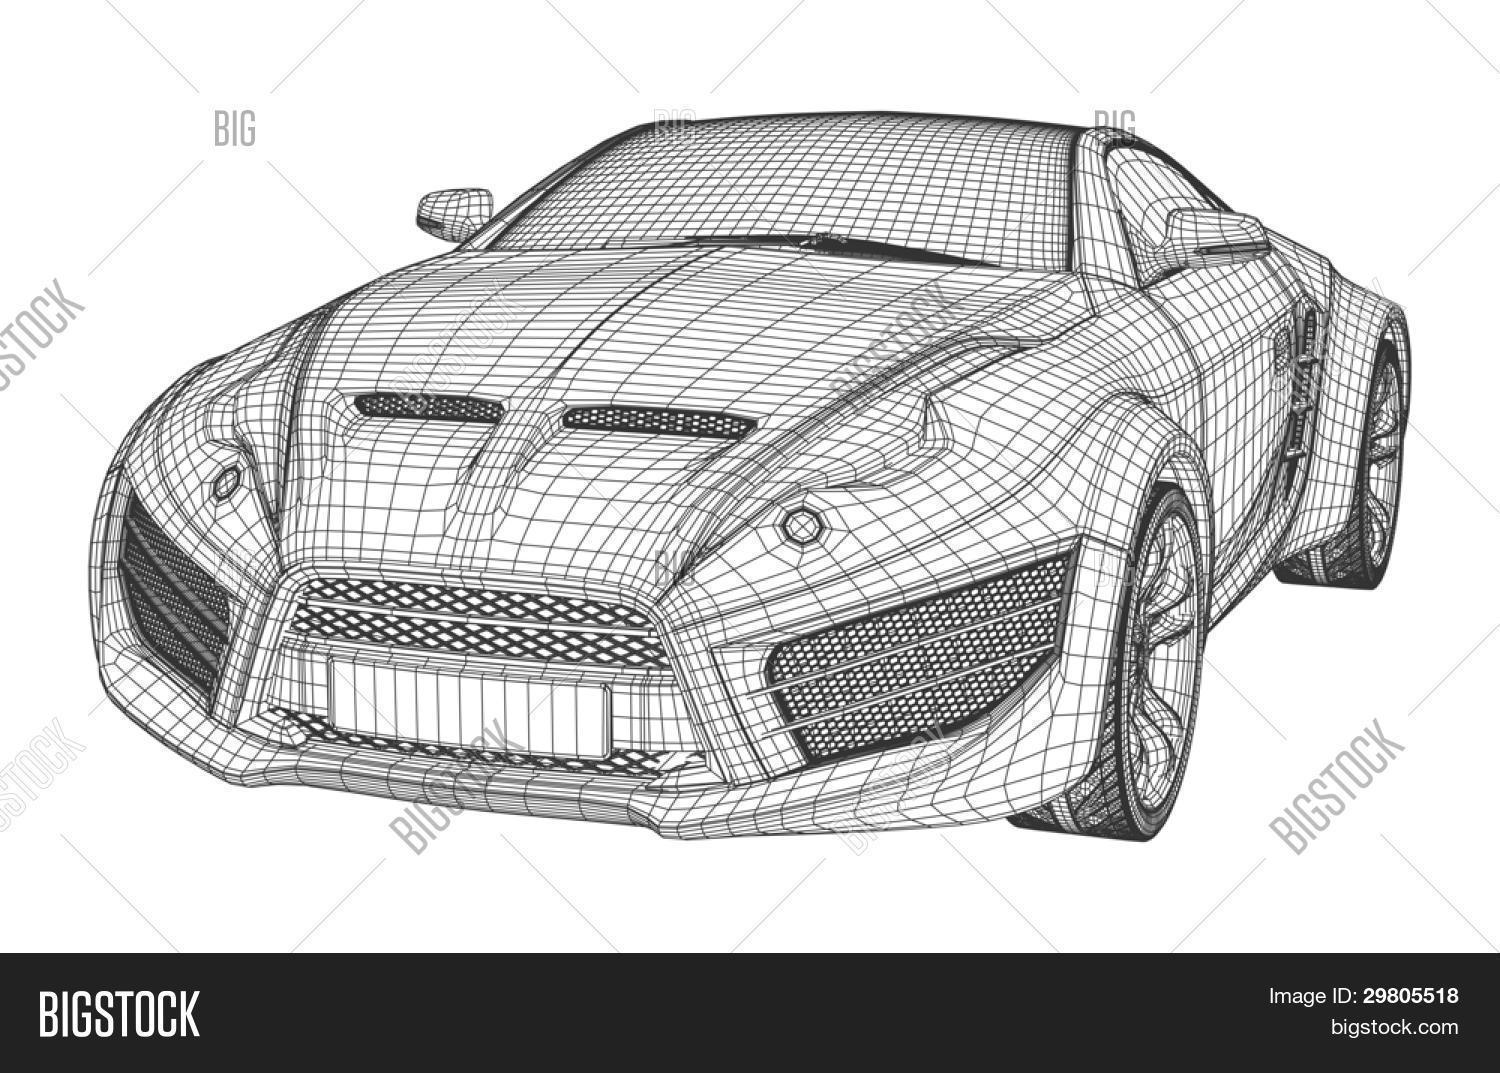 Sports Car Blueprint Vector & Photo (Free Trial) | Bigstock